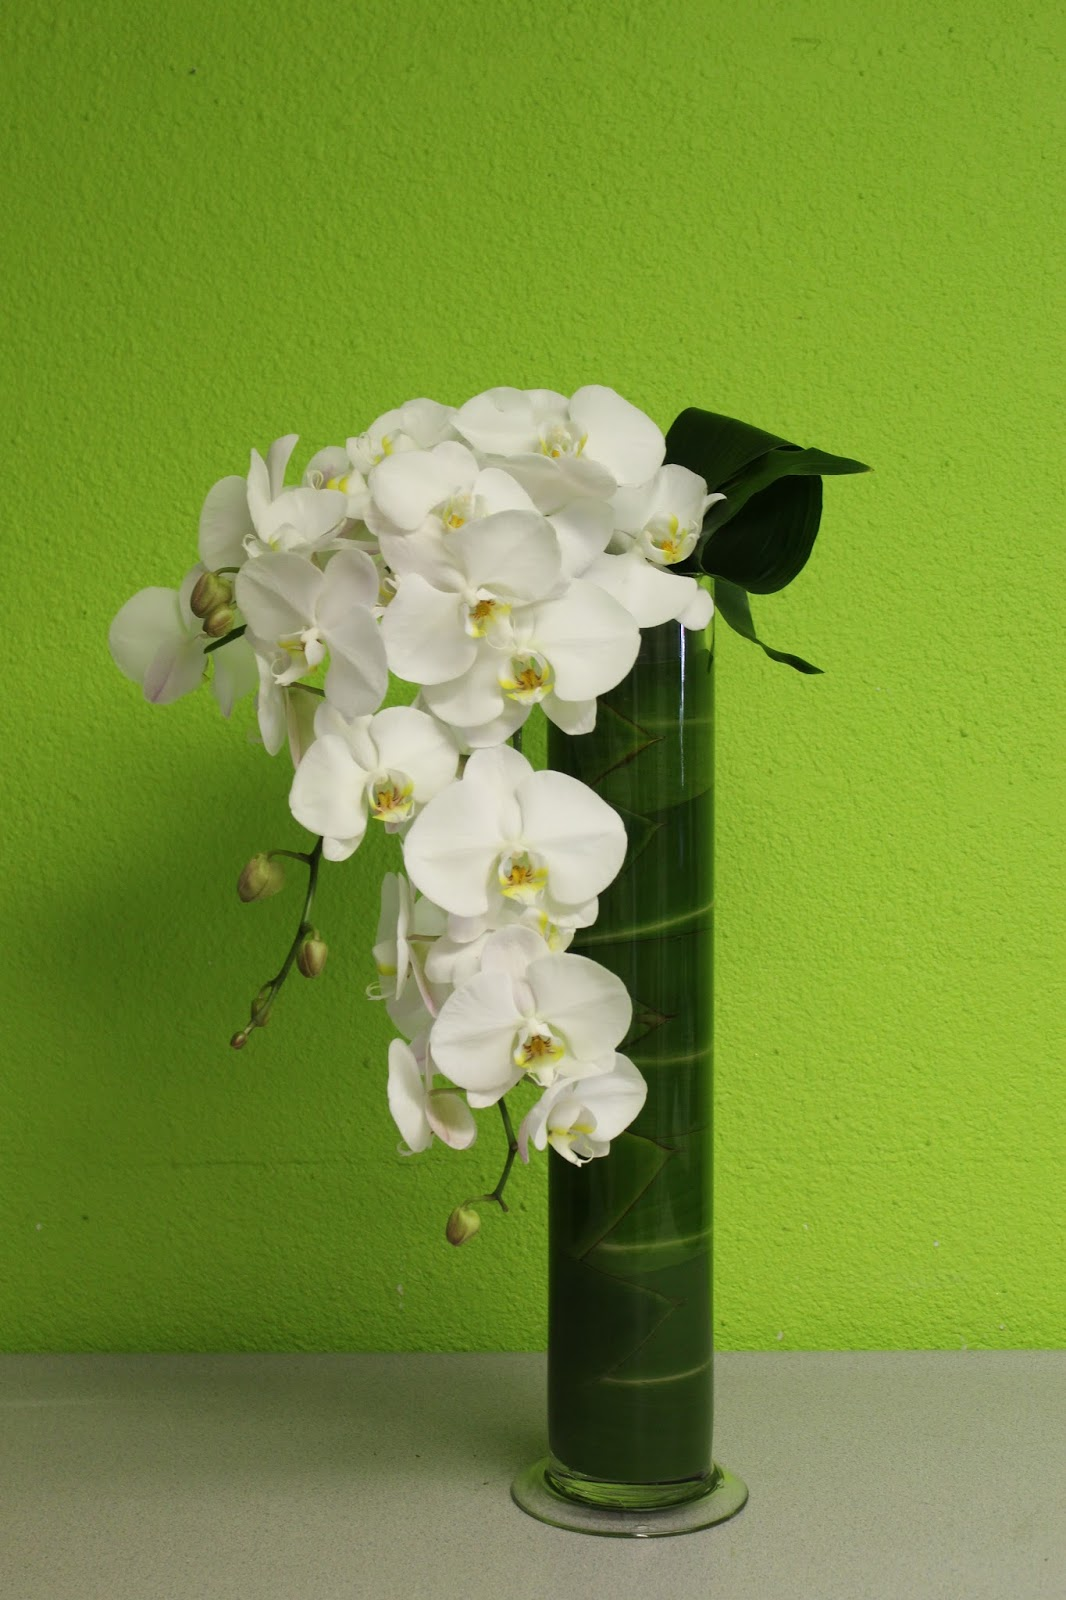 Layered grouping of white waterfall phalaenopsis orchids las stylish white waterfall phalaenopsis orchid vase arrangement las vegas flowers floridaeventfo Choice Image